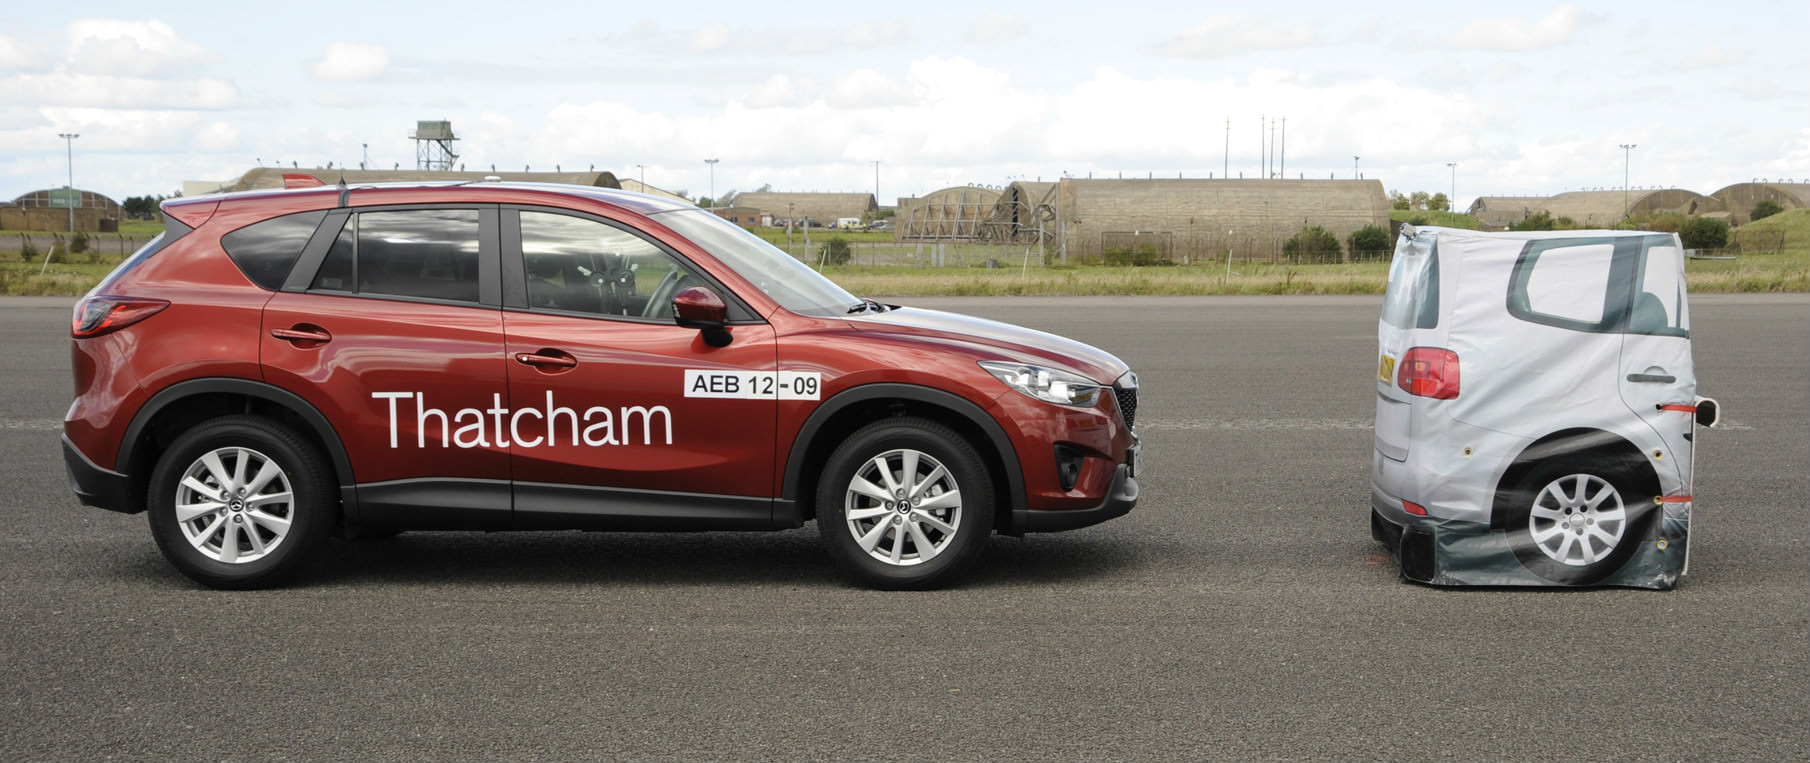 image of a car testing its autonomous emergency braking sytem